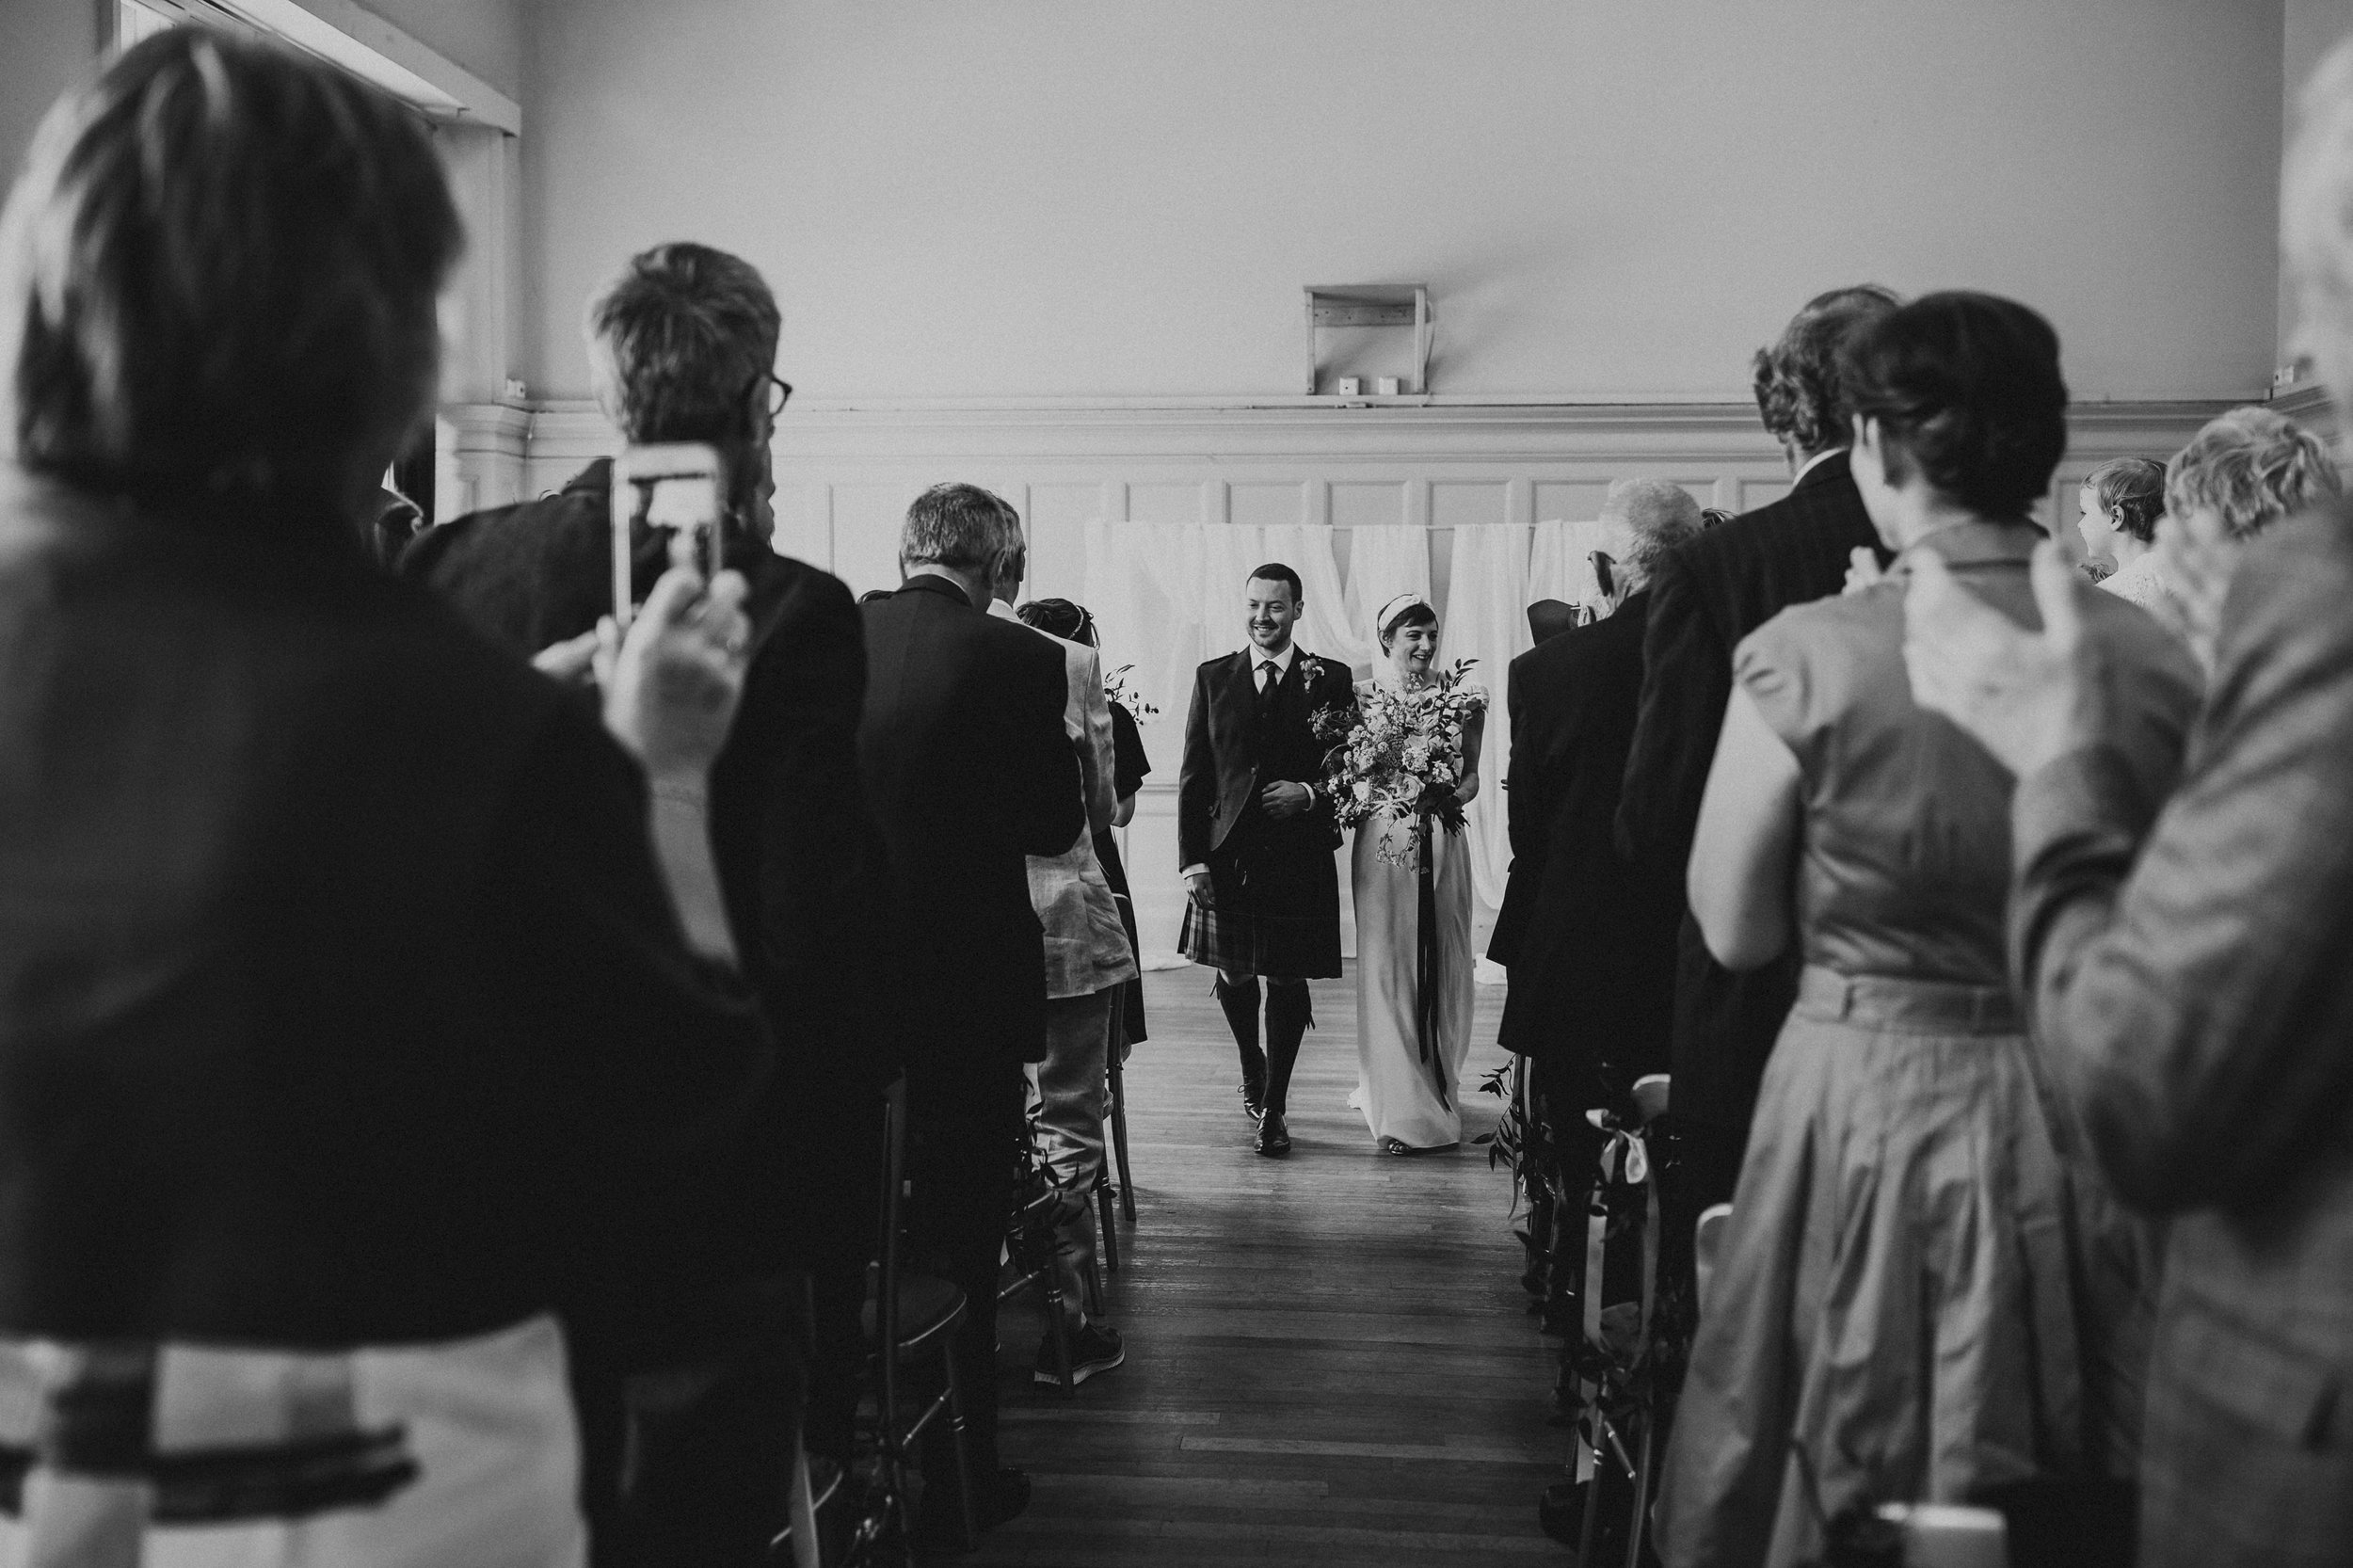 TIMBERYARD_EDINBURGH_WEDDING_PJ_PHILLIPS_PHOTOGRAPHY_90.jpg